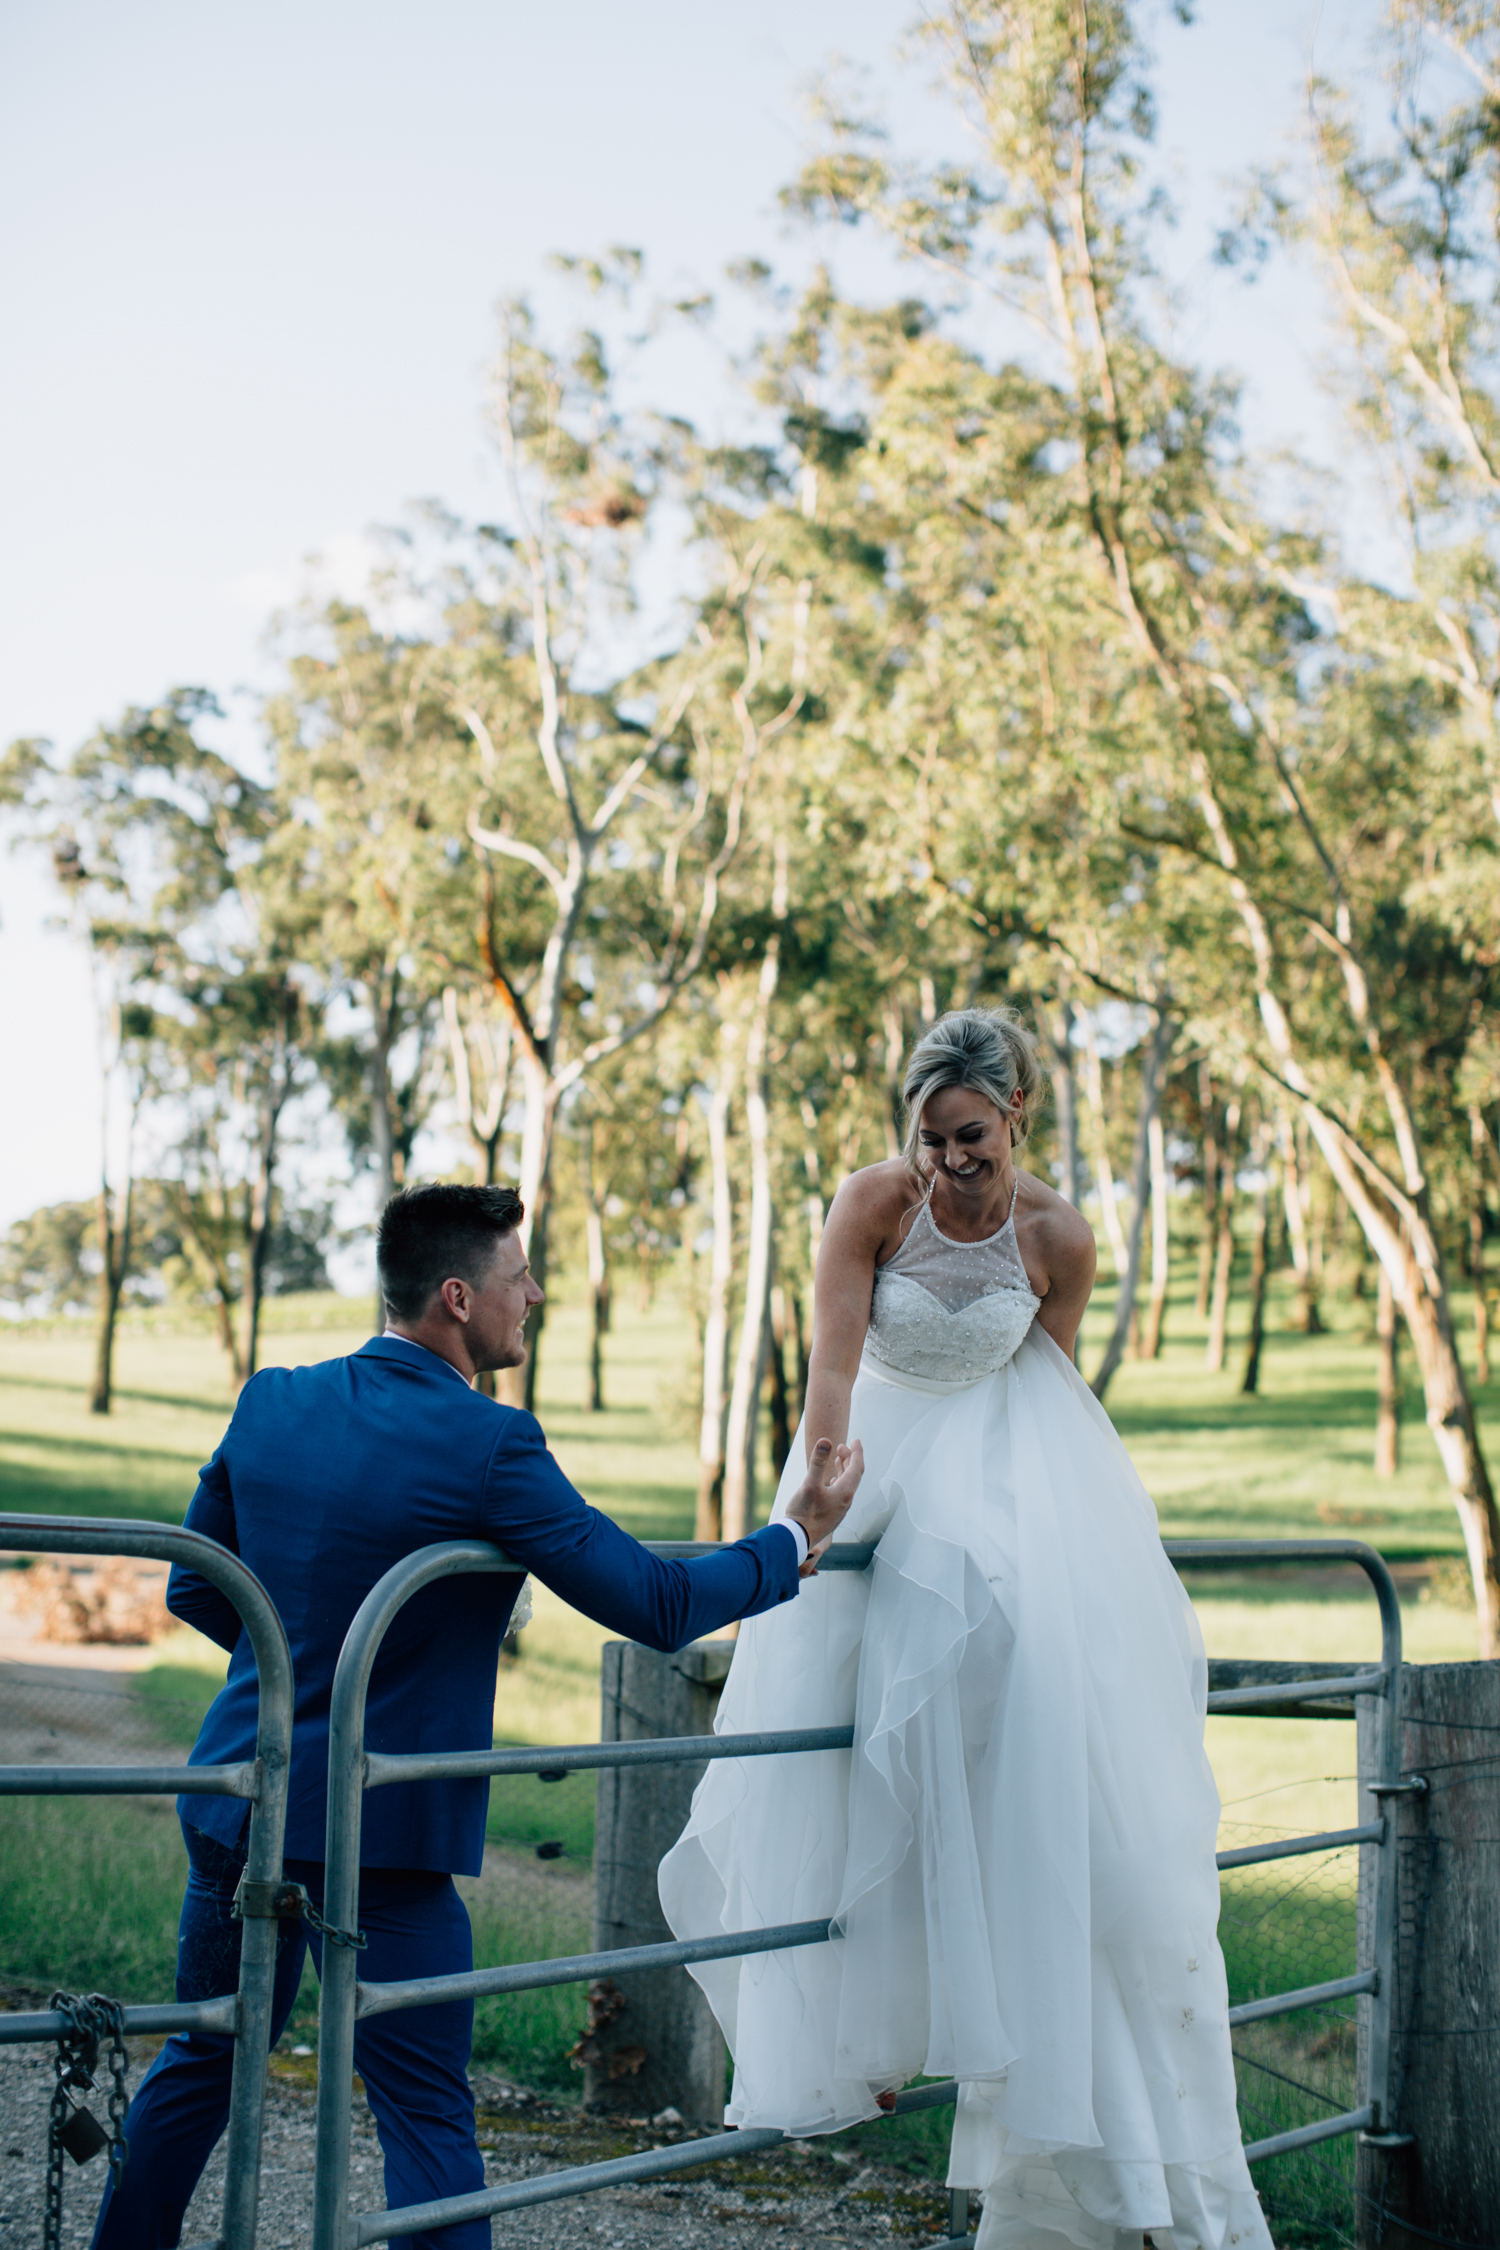 kim-mark-centennial-vineyards-bowral-southern-highlands-wedding-83